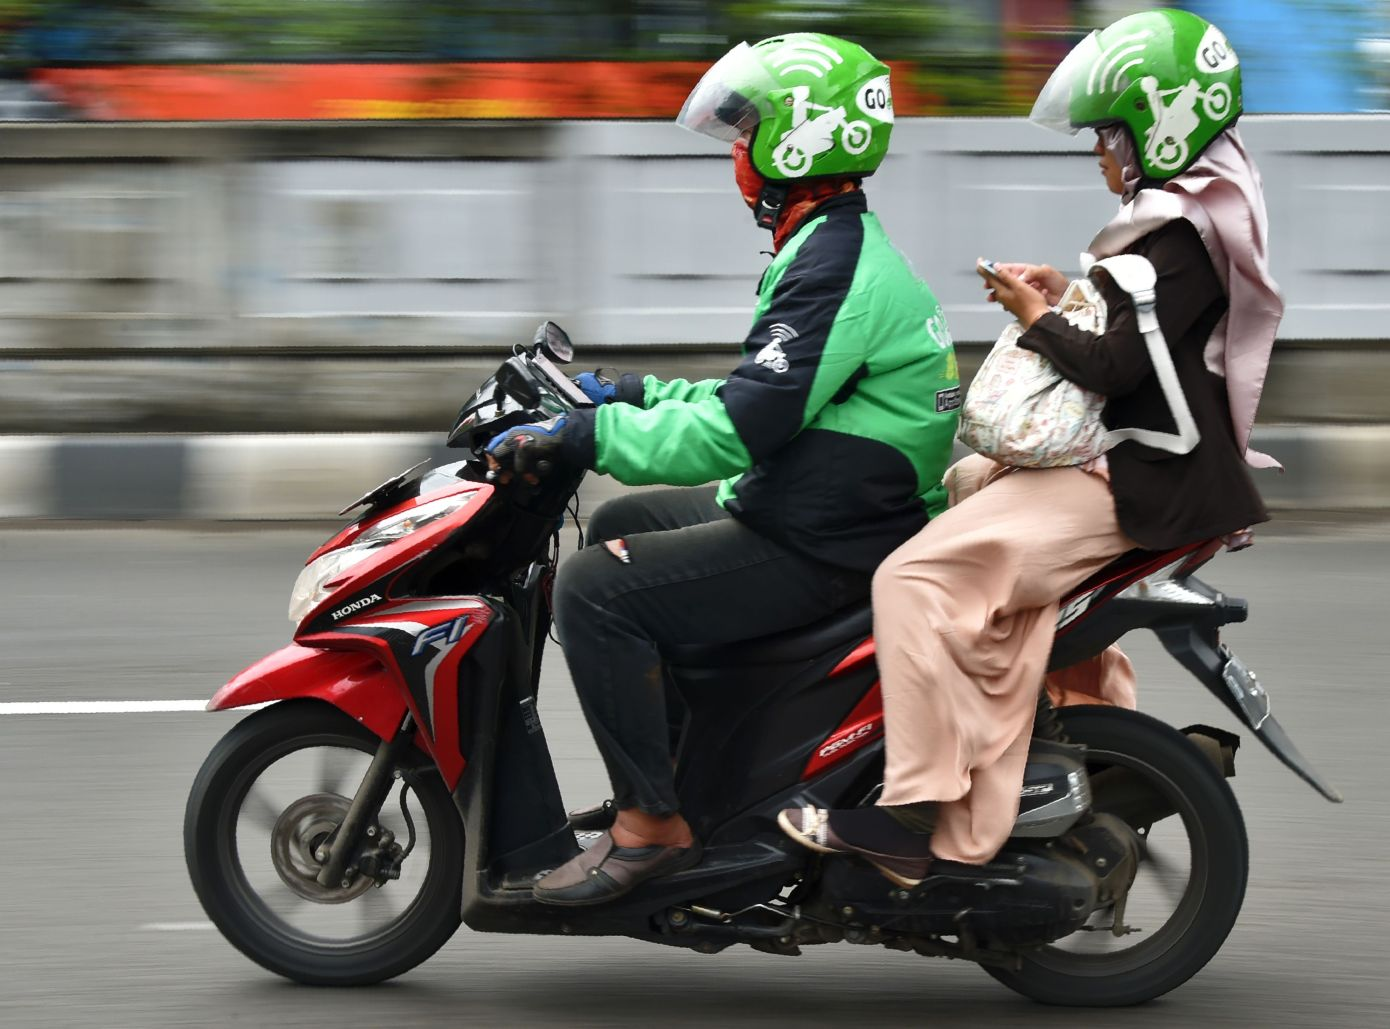 Telkomsel invests an additional $300M in Gojek